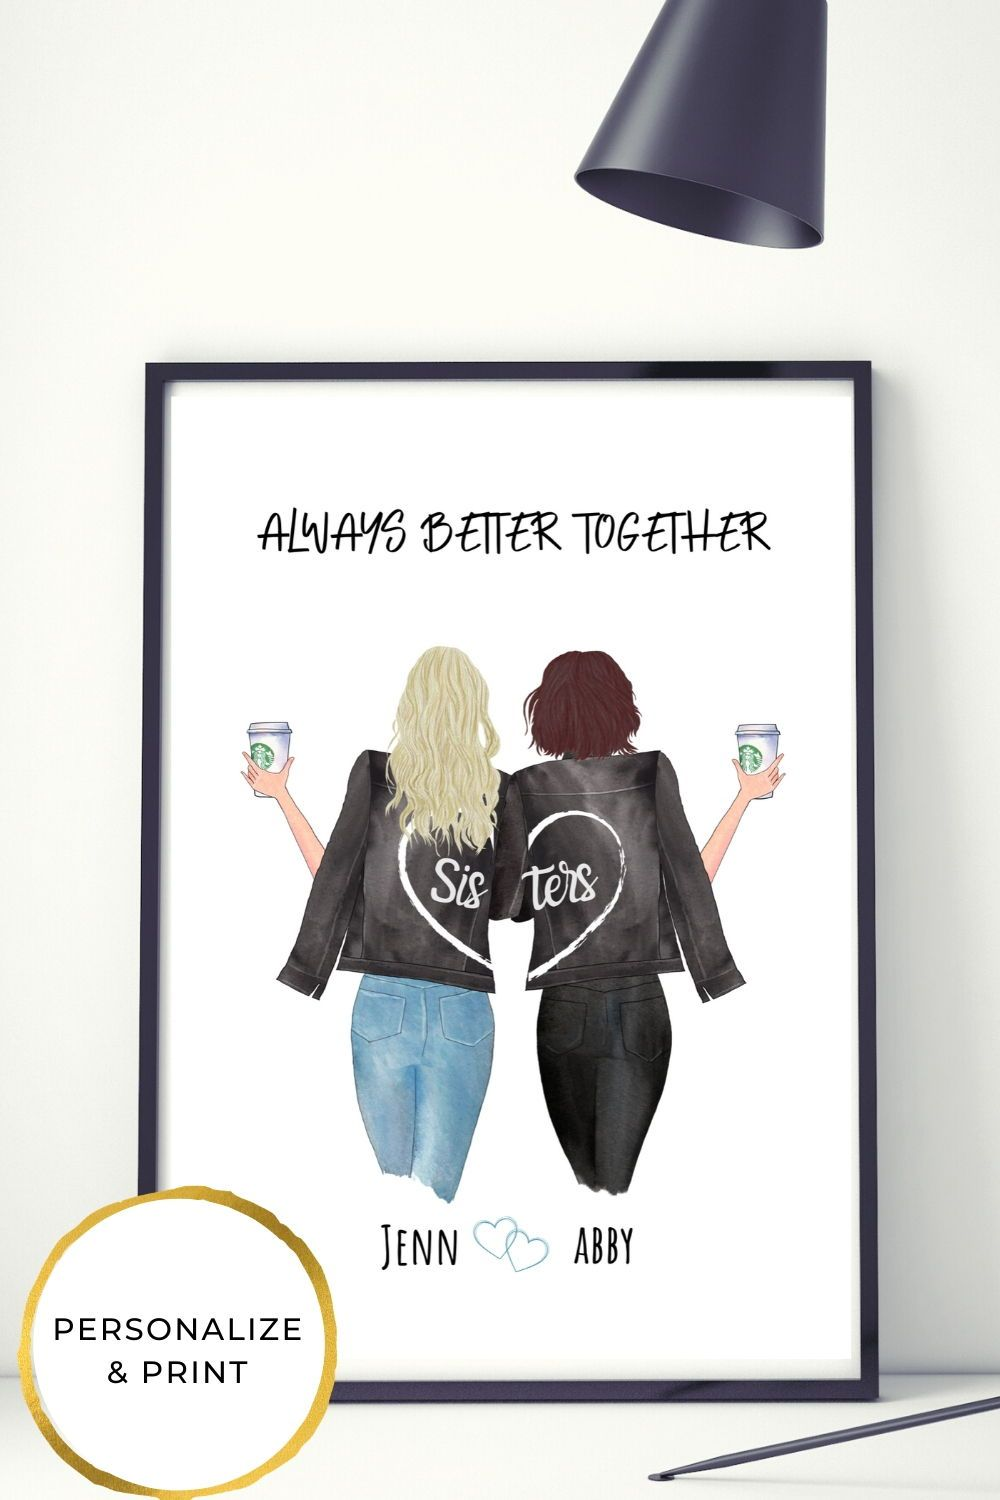 Personalized Gift For Sister In 2020 Diy Birthday Gifts For Sister Sister Gifts Diy Personalised Gifts For Sister